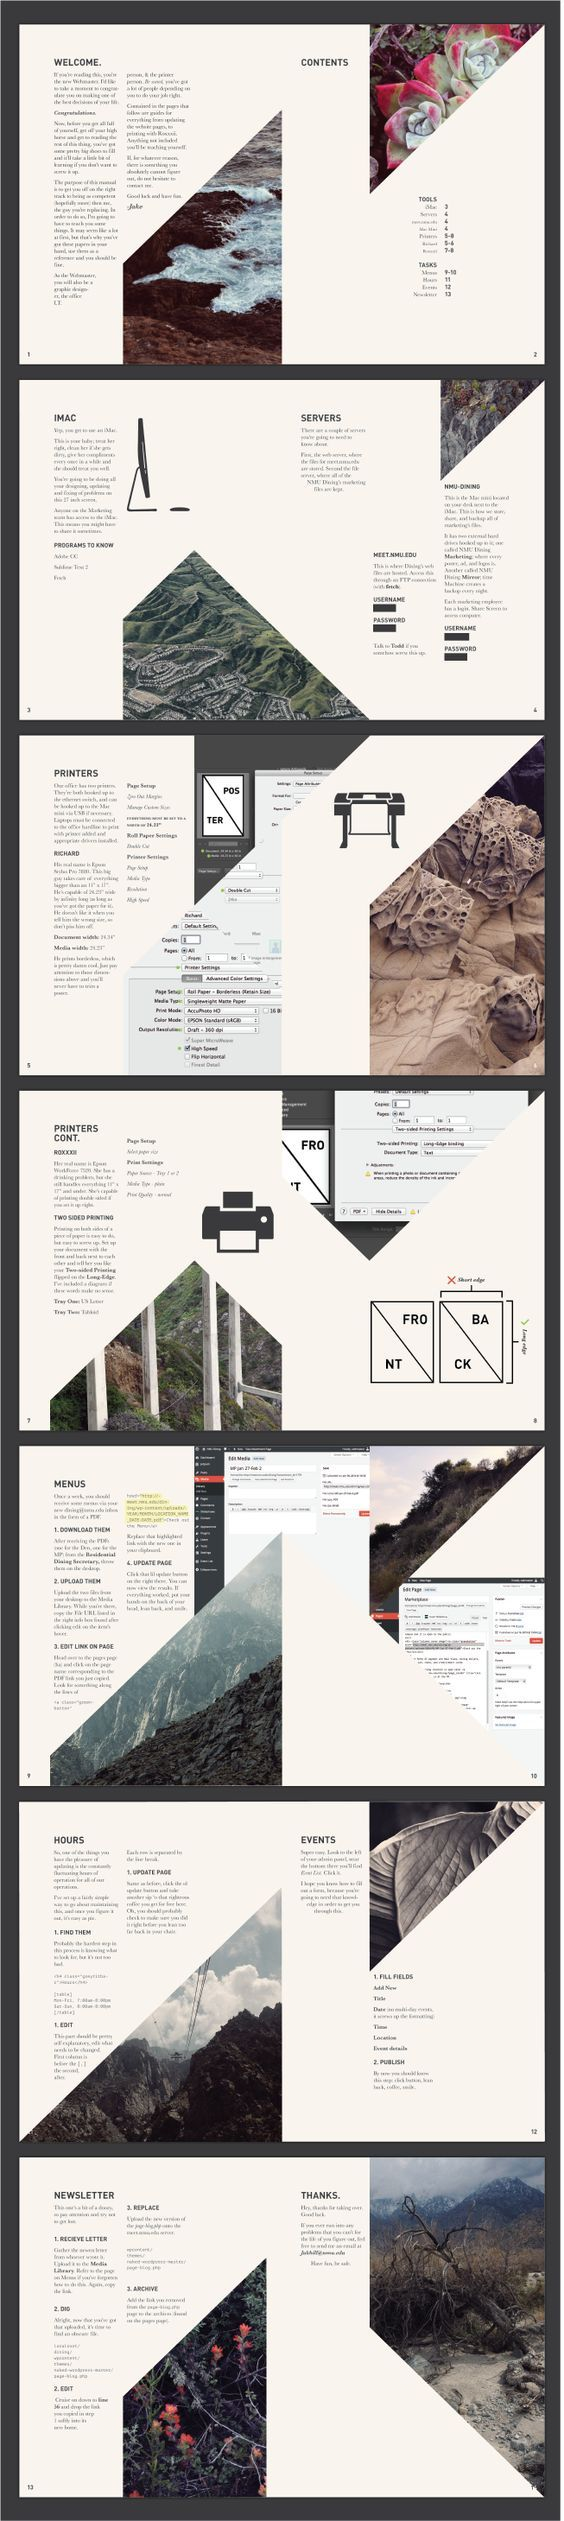 Designed by Jake Hill. I am inspired by the angled cropping of the images. It creates great eye movement, and visual interest. There's a great balance of negative and positive space throughout the layouts.: